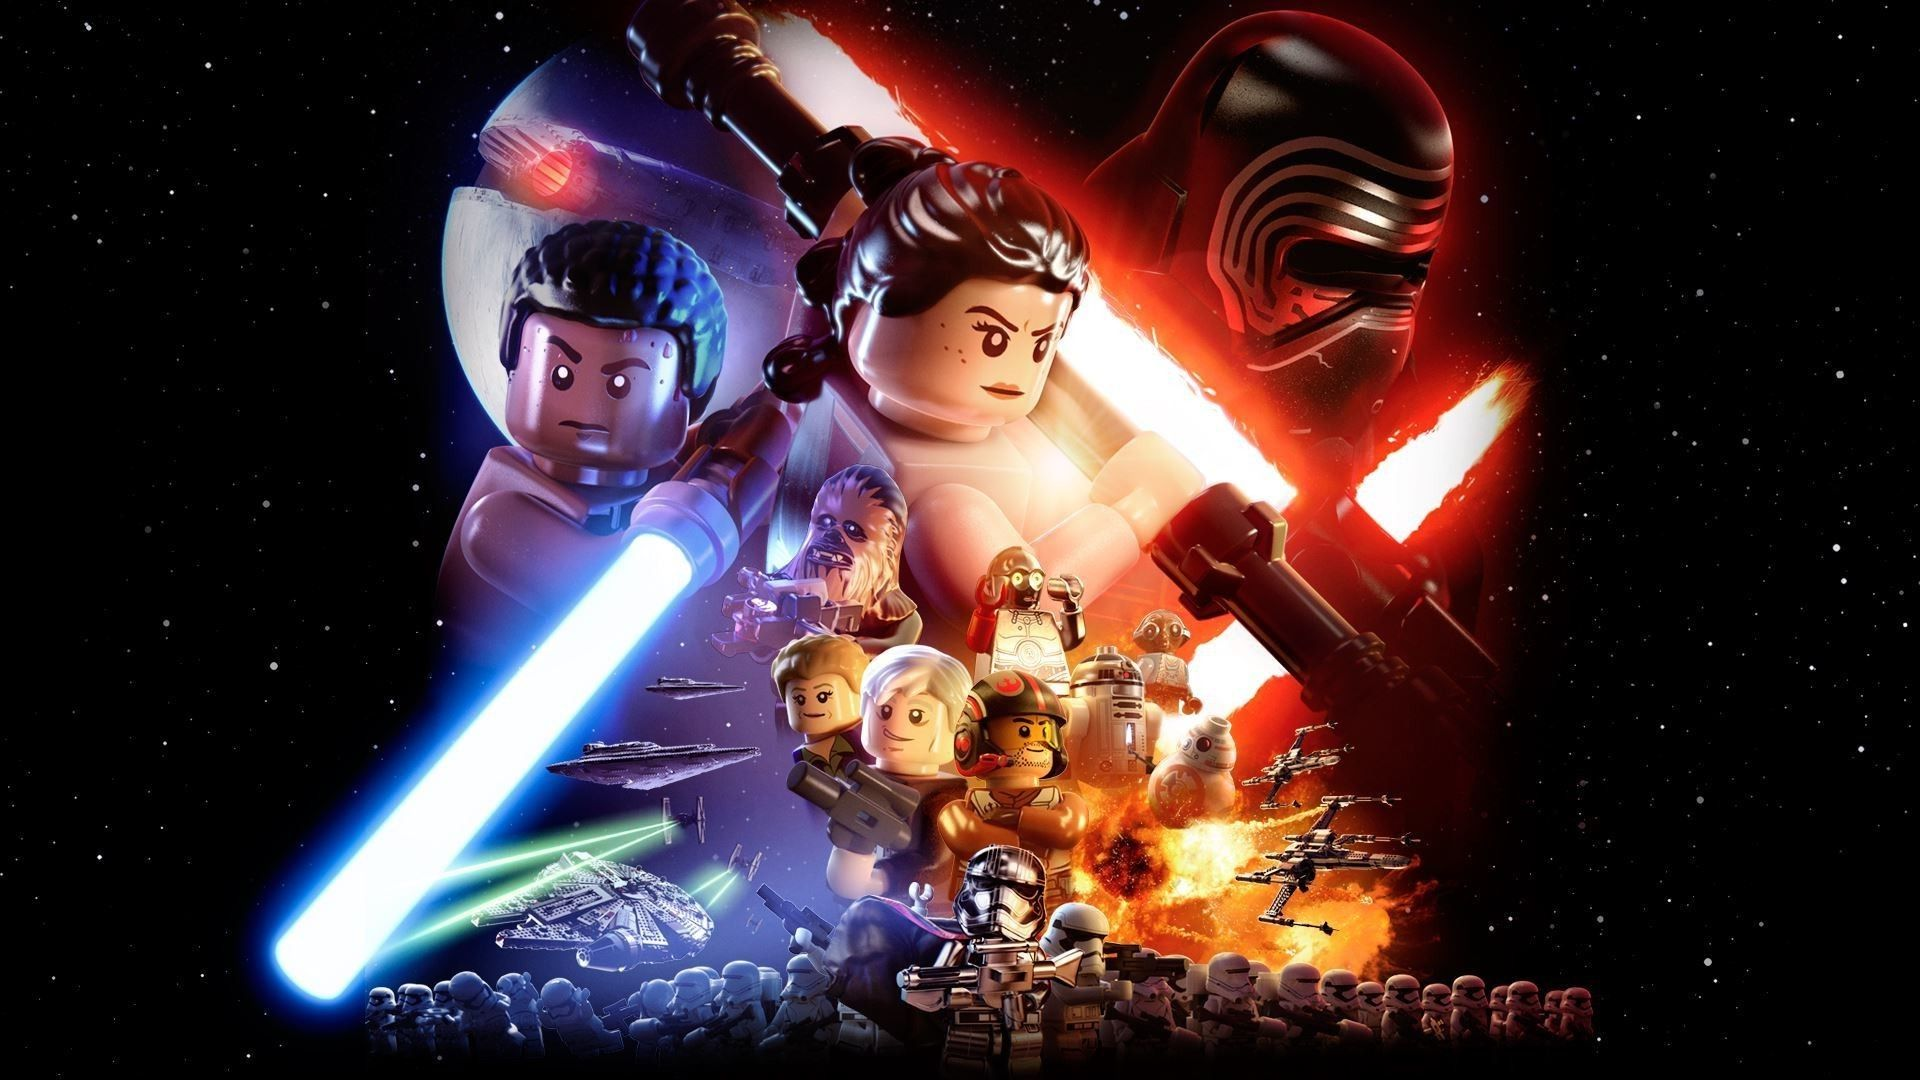 lego star wars: the force awakens video game - deluxe edition